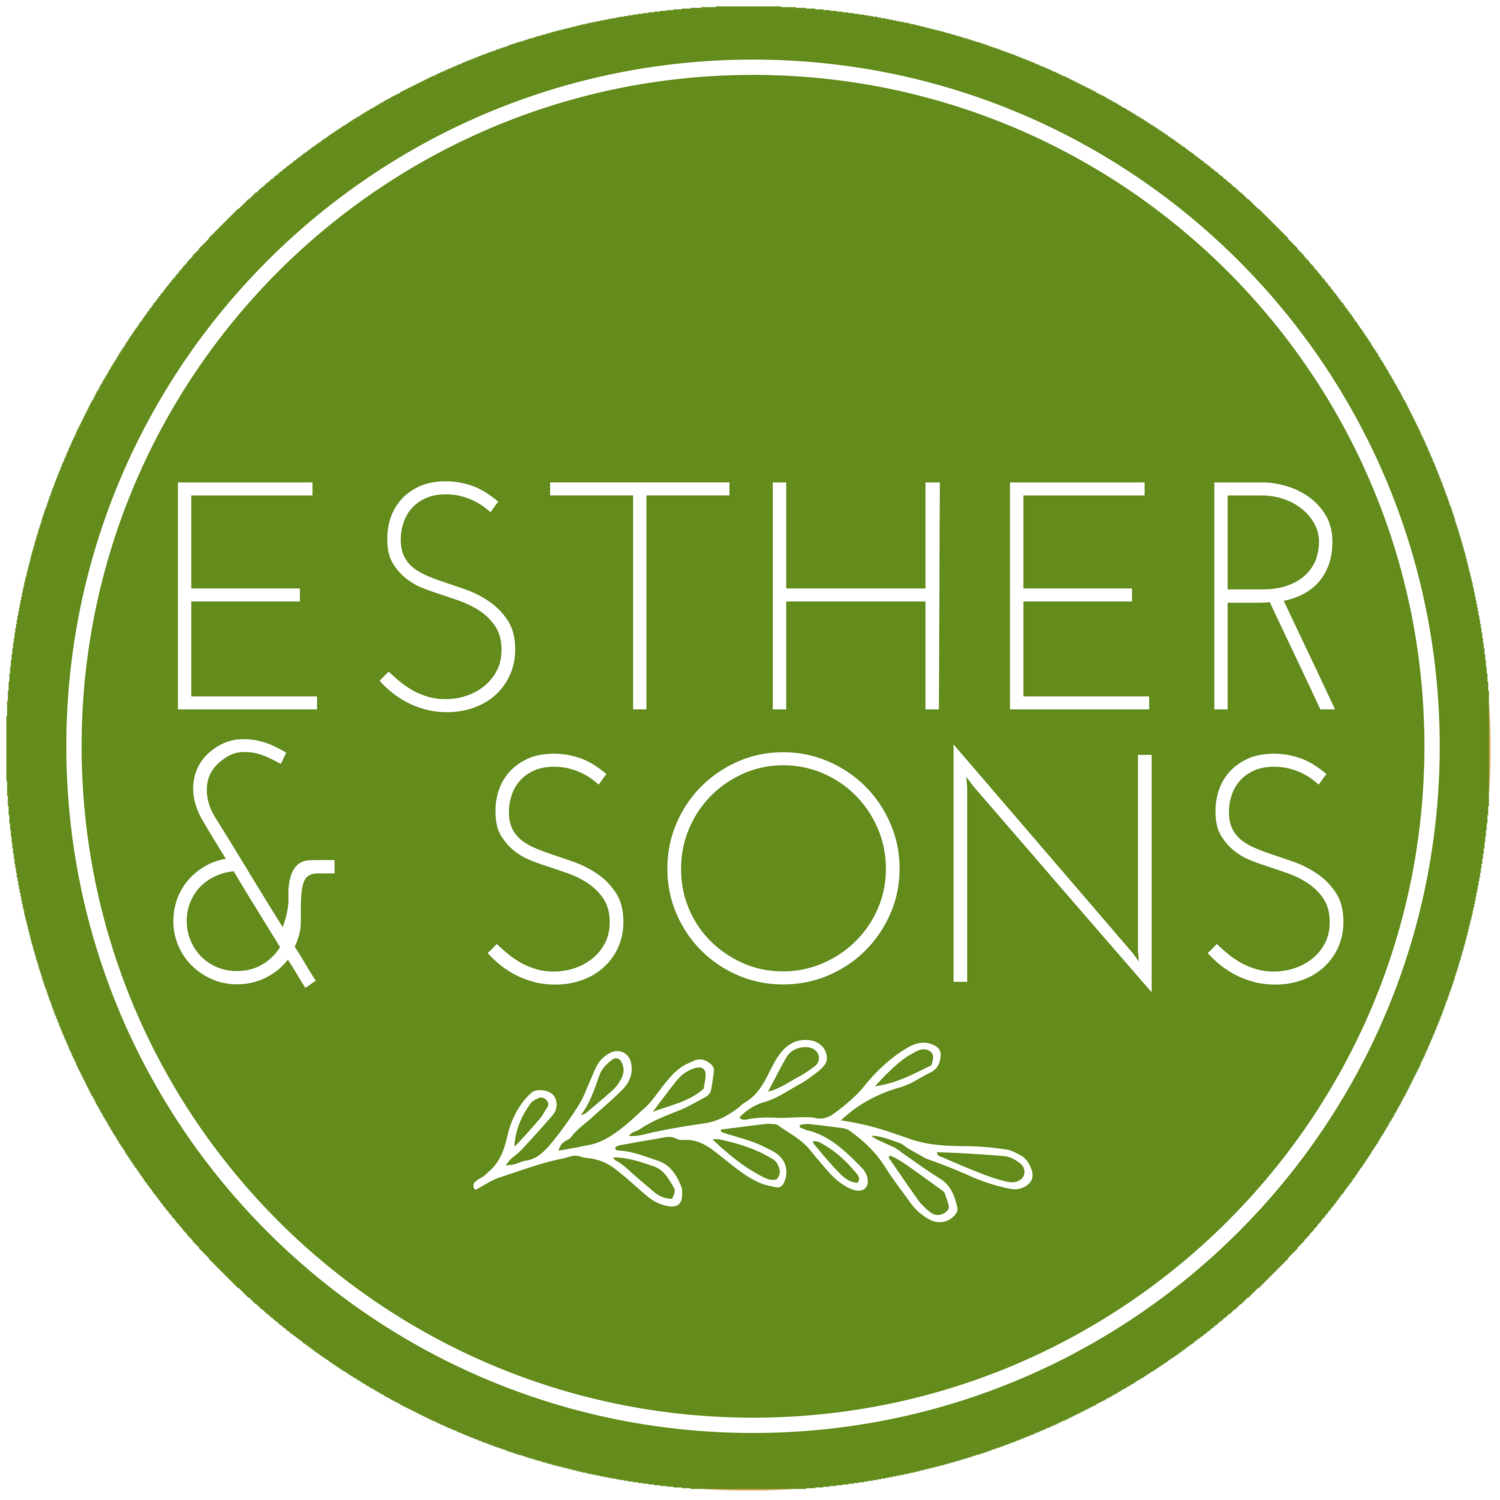 Esther & Sons